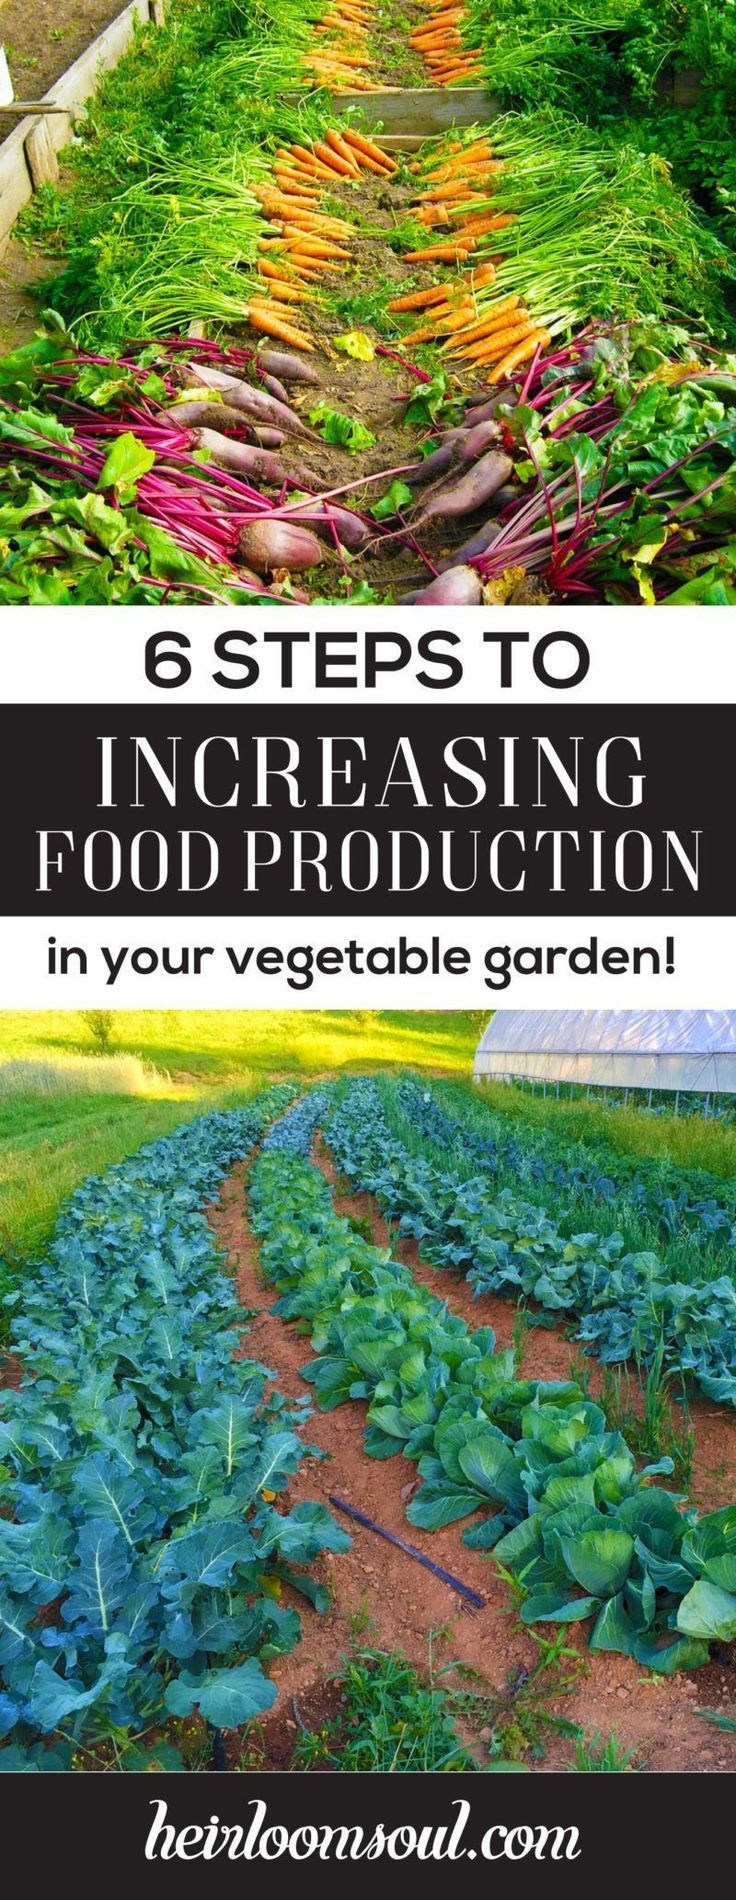 How to Increase Food Production in Your Vegetable Garden in 6 Steps   Heirloom Soul   heirloomsoul.com